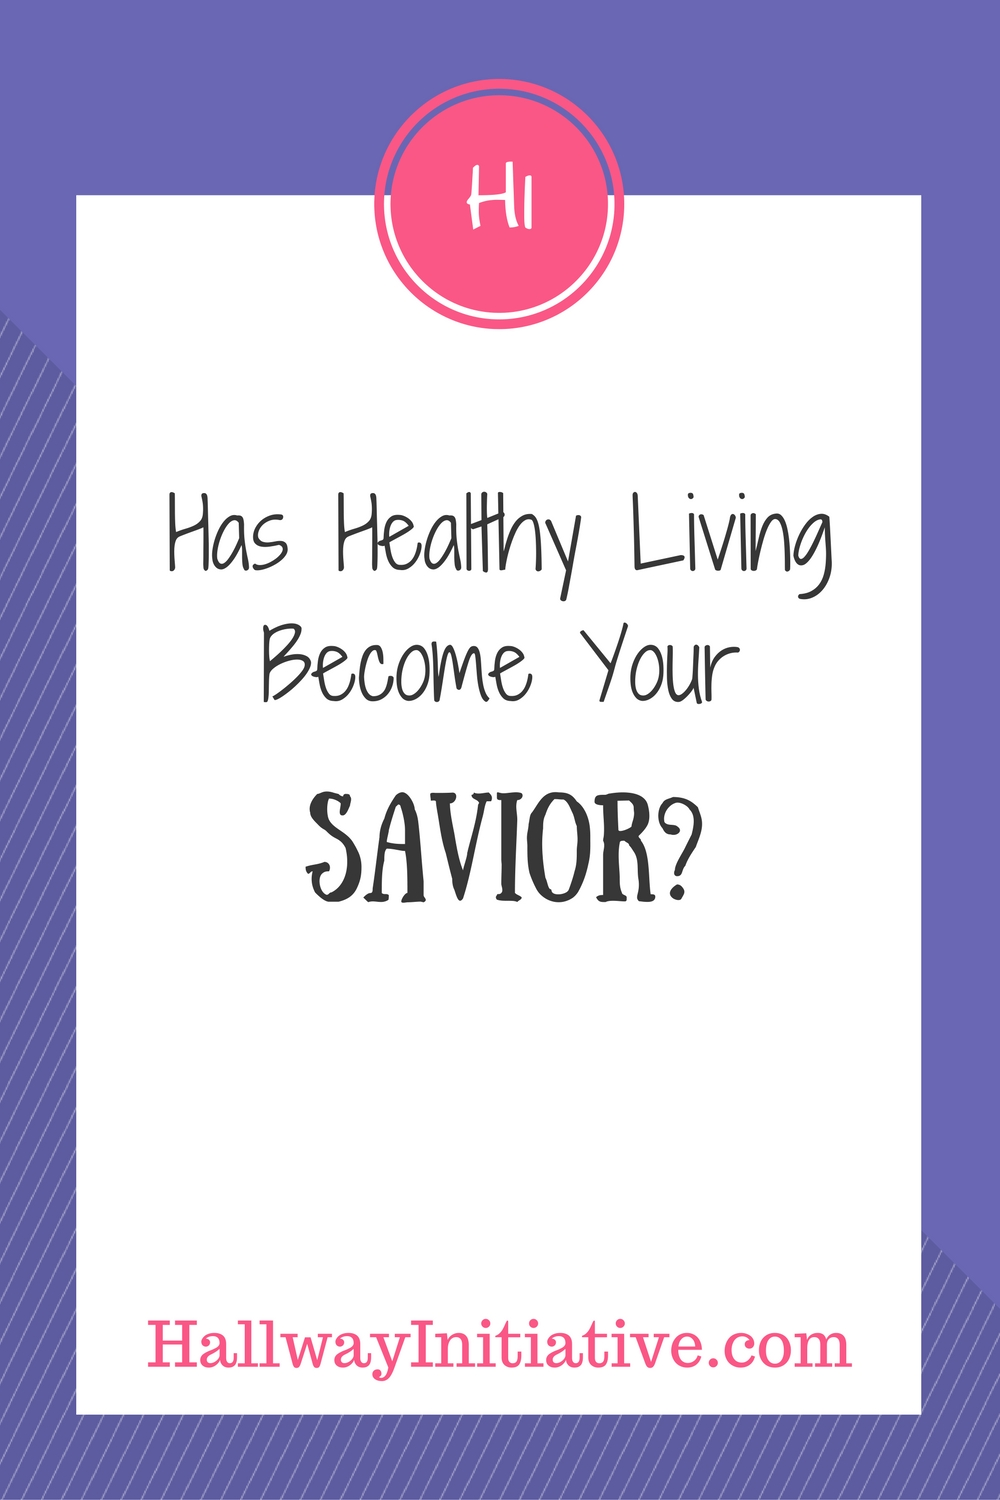 Has healthy living become your savior?